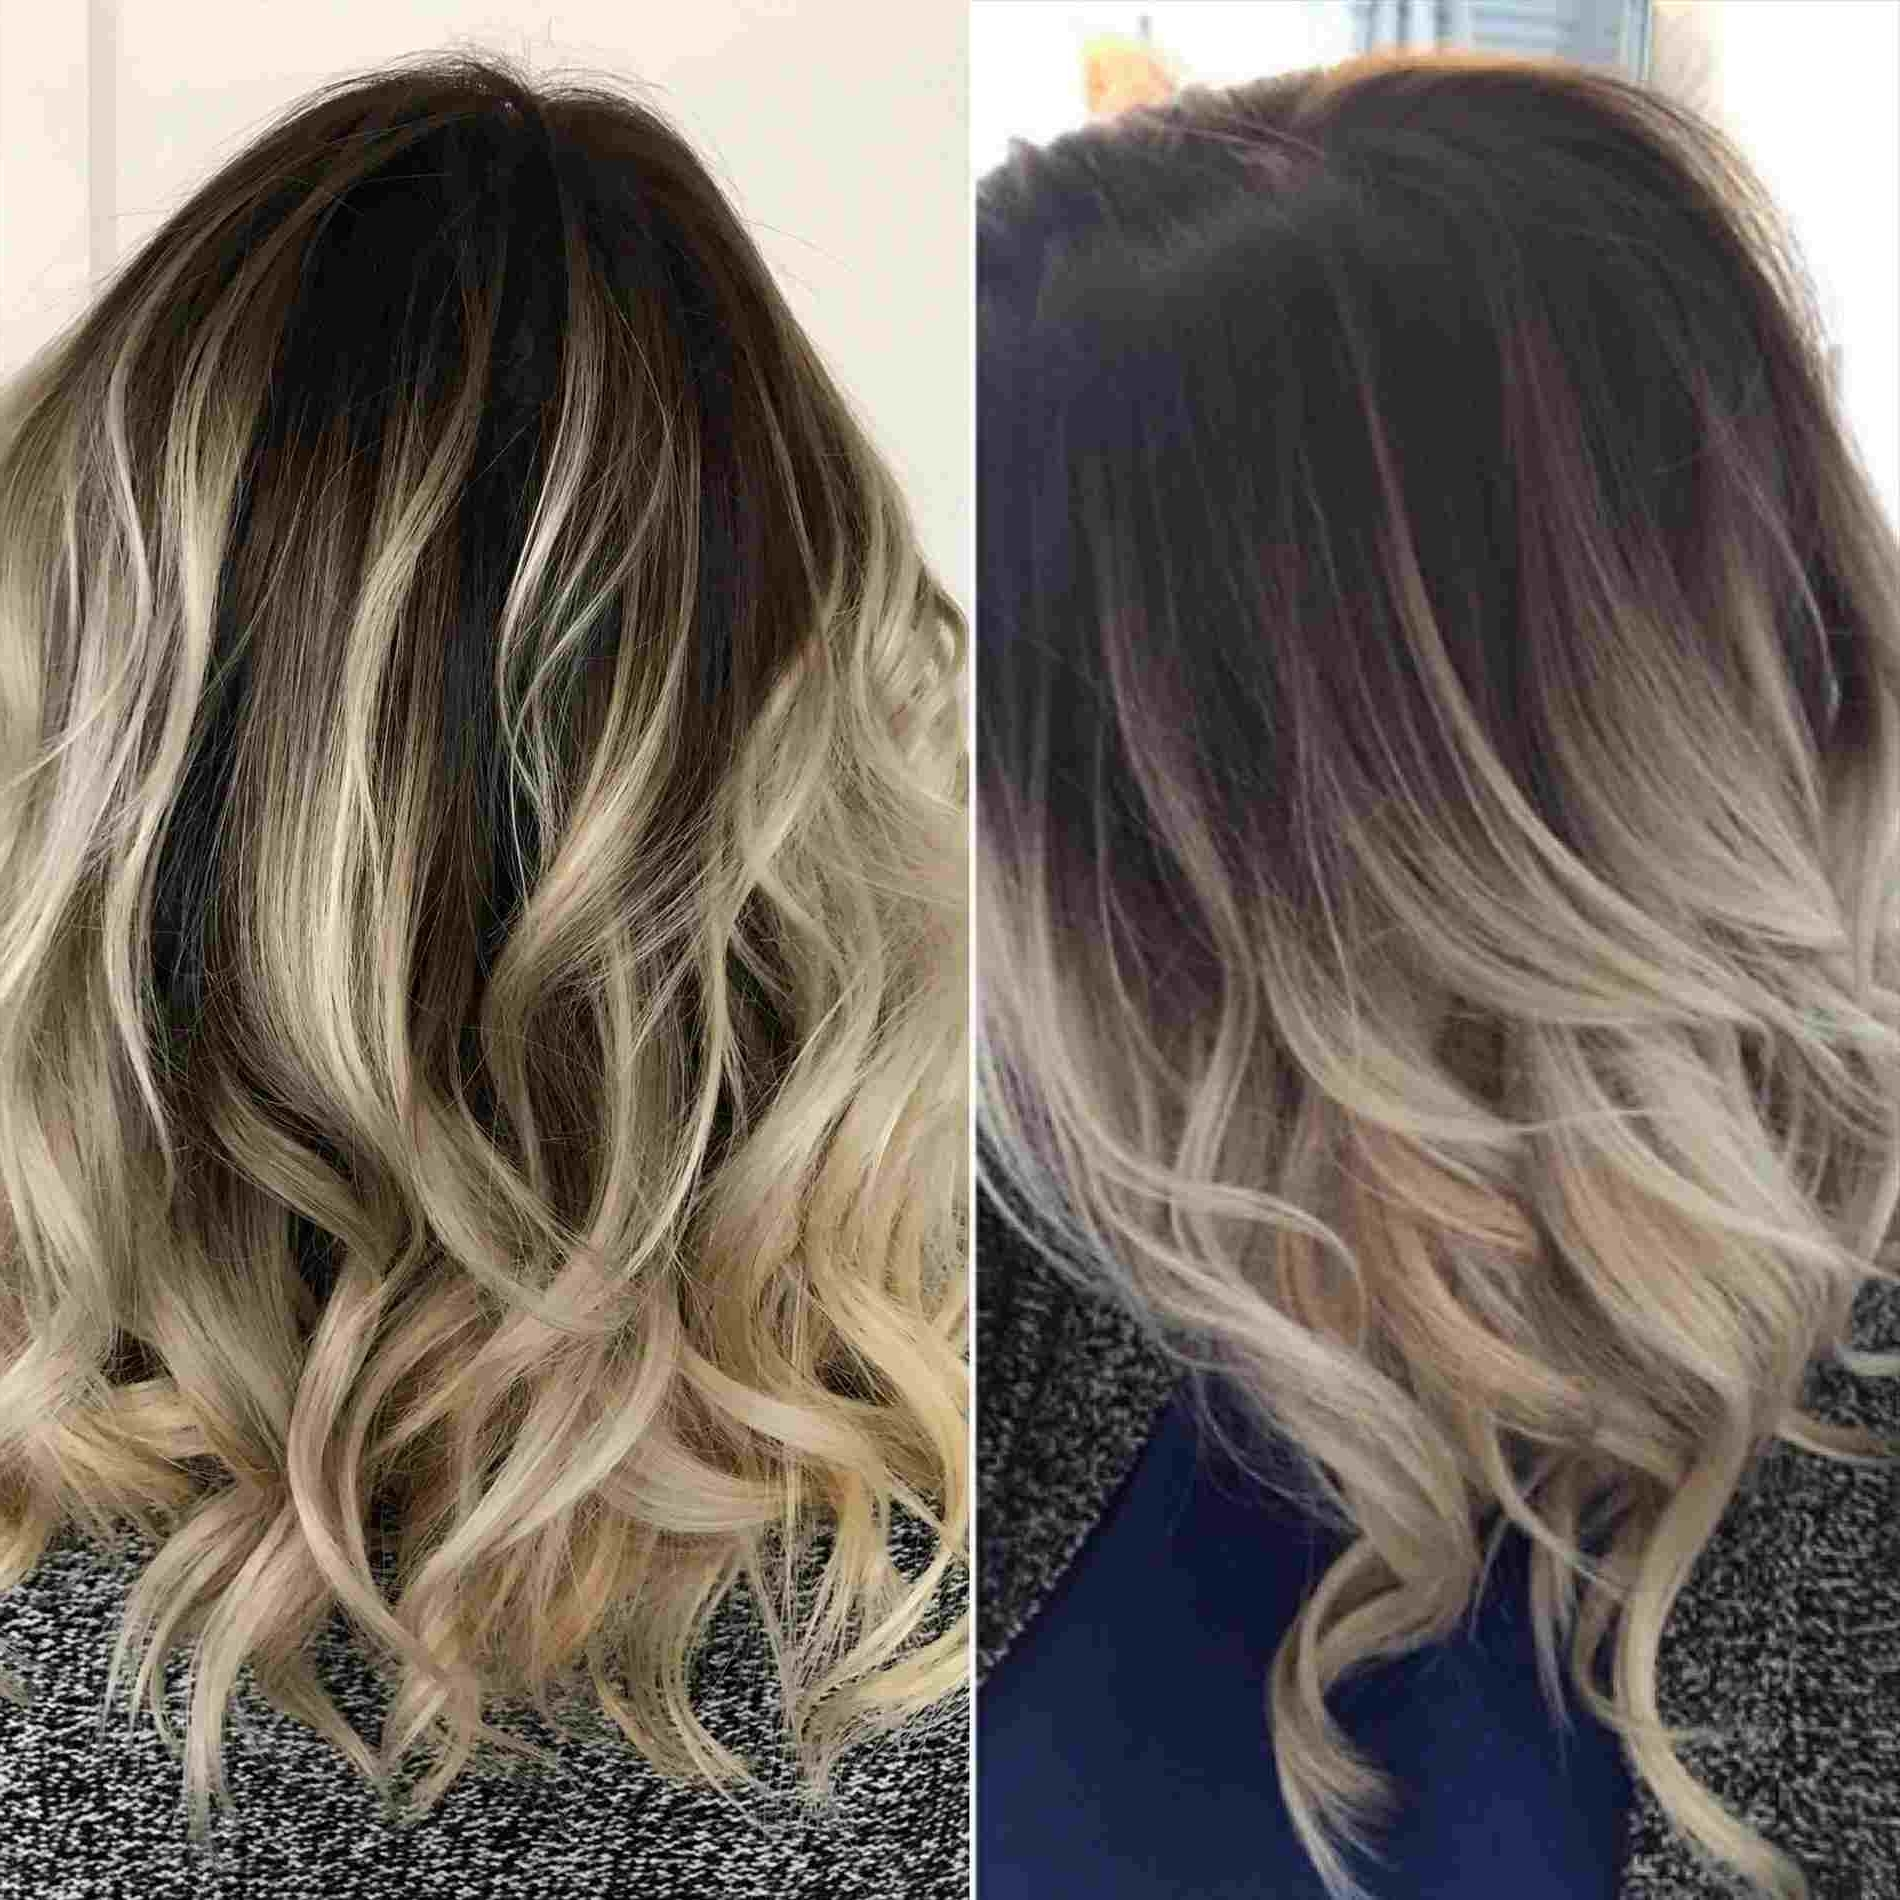 Most Recent Icy Highlights And Loose Curls Blonde Hairstyles Pertaining To And Cool Blonde Hair With Dark Roots Balayage Icy Ashy Highlights (View 11 of 20)